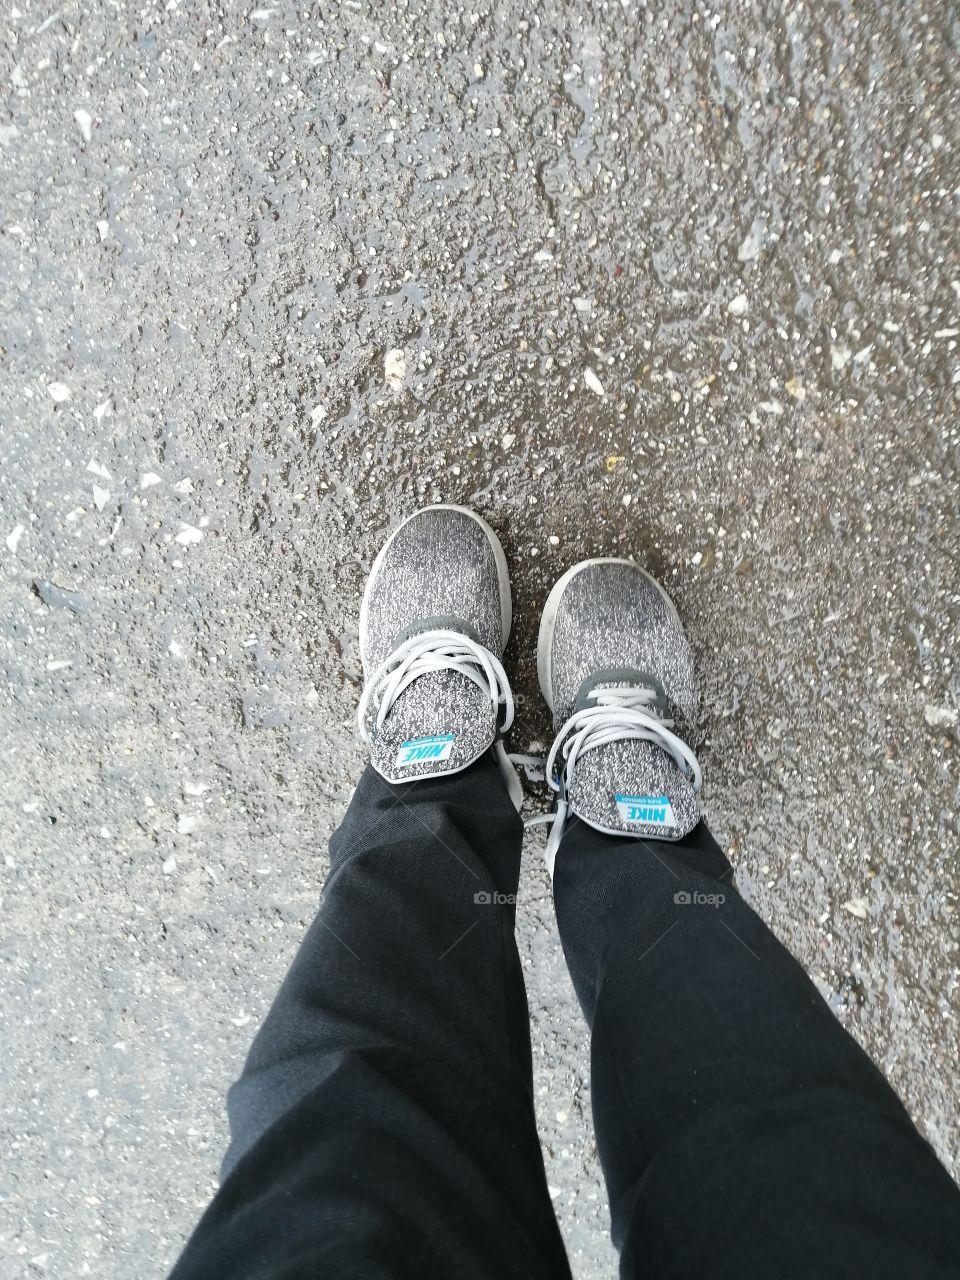 From A  to B: Same shoes, same route goint to work every day for almost 4 years. Thank you to my Nike shoes for keeping me safe while walking for more success.